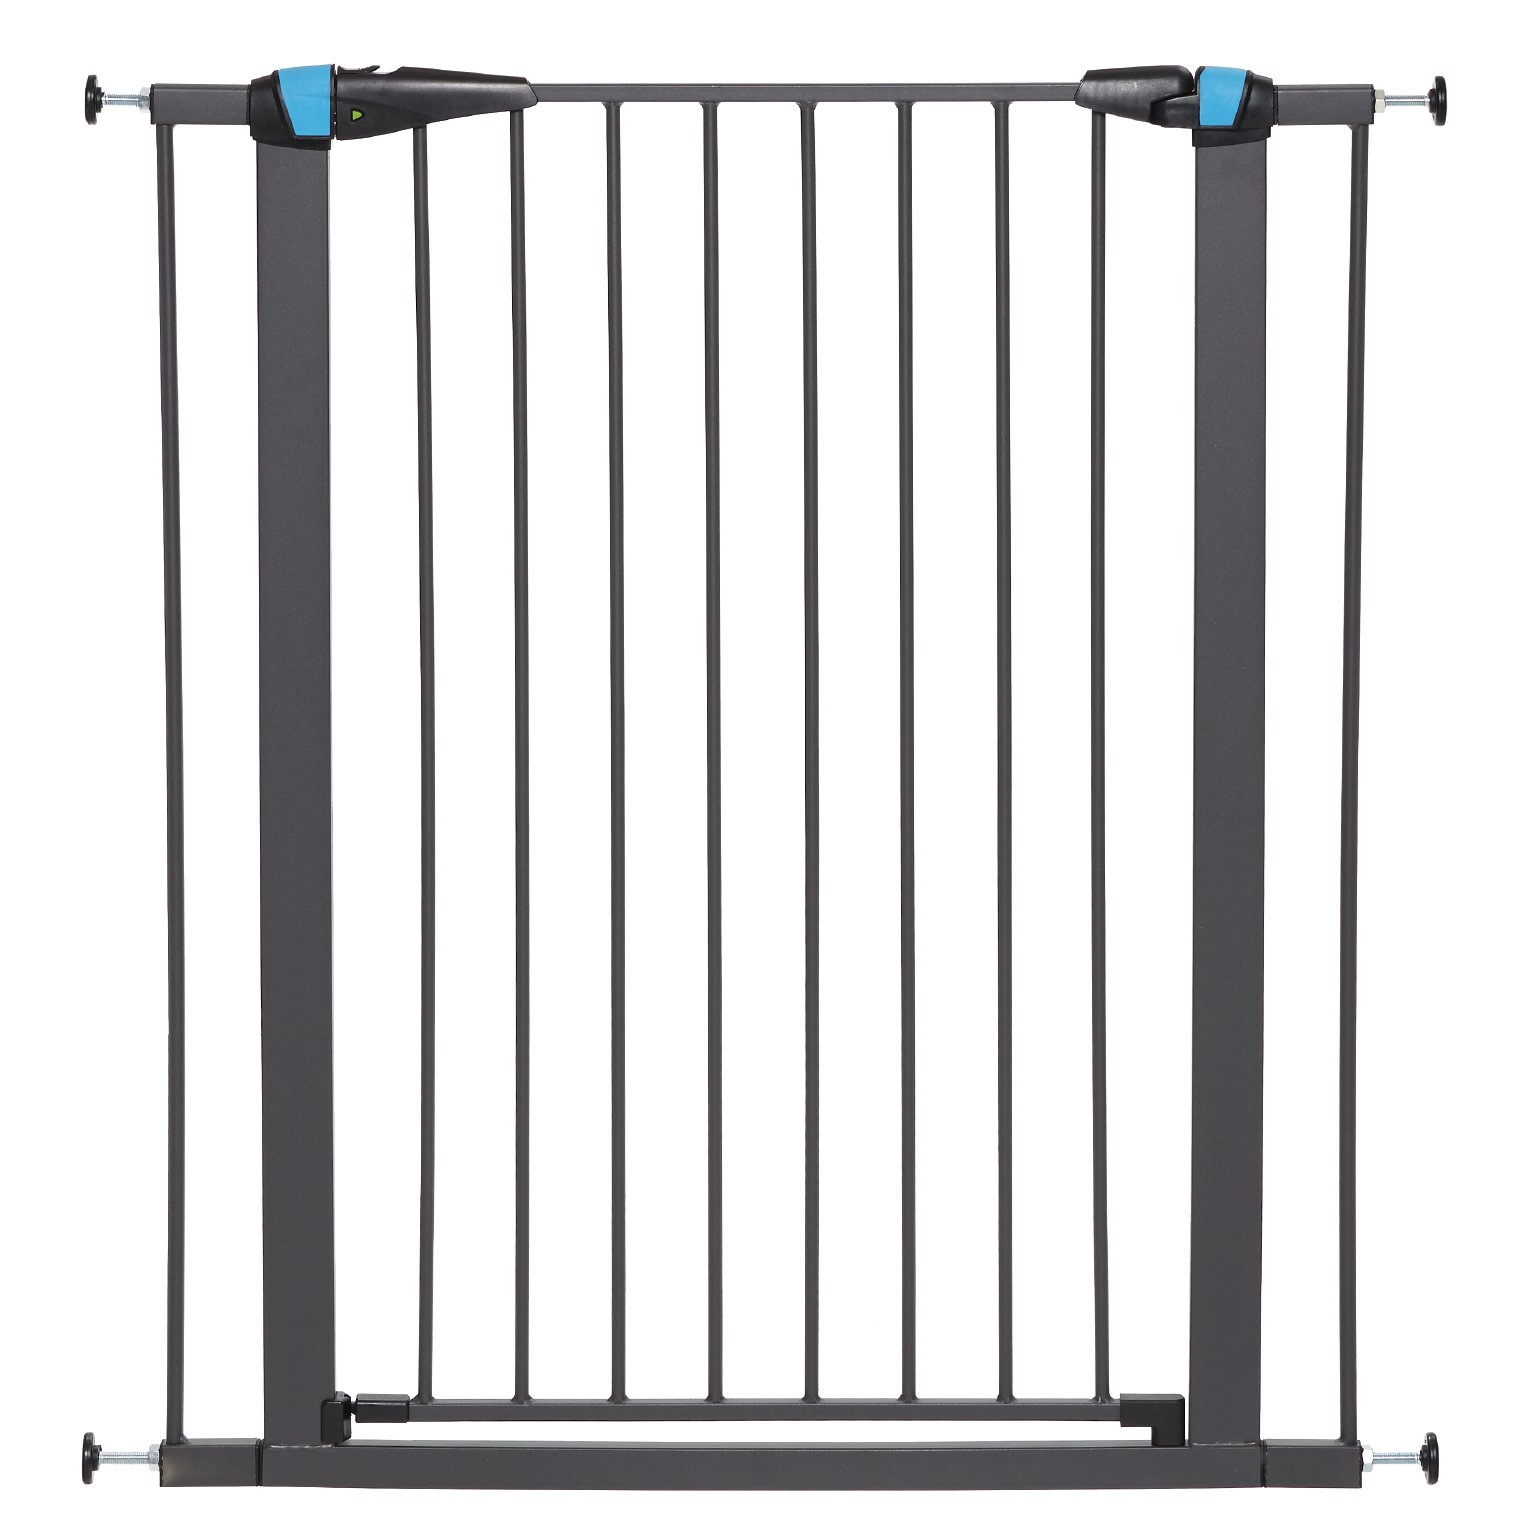 MidWest Homes for Pets Pet Gate | 39'' High Walk-thru Steel Pet Gate by 29'' to 38'' Wide in Textured Graphite w/Glow Frame, X-Tall